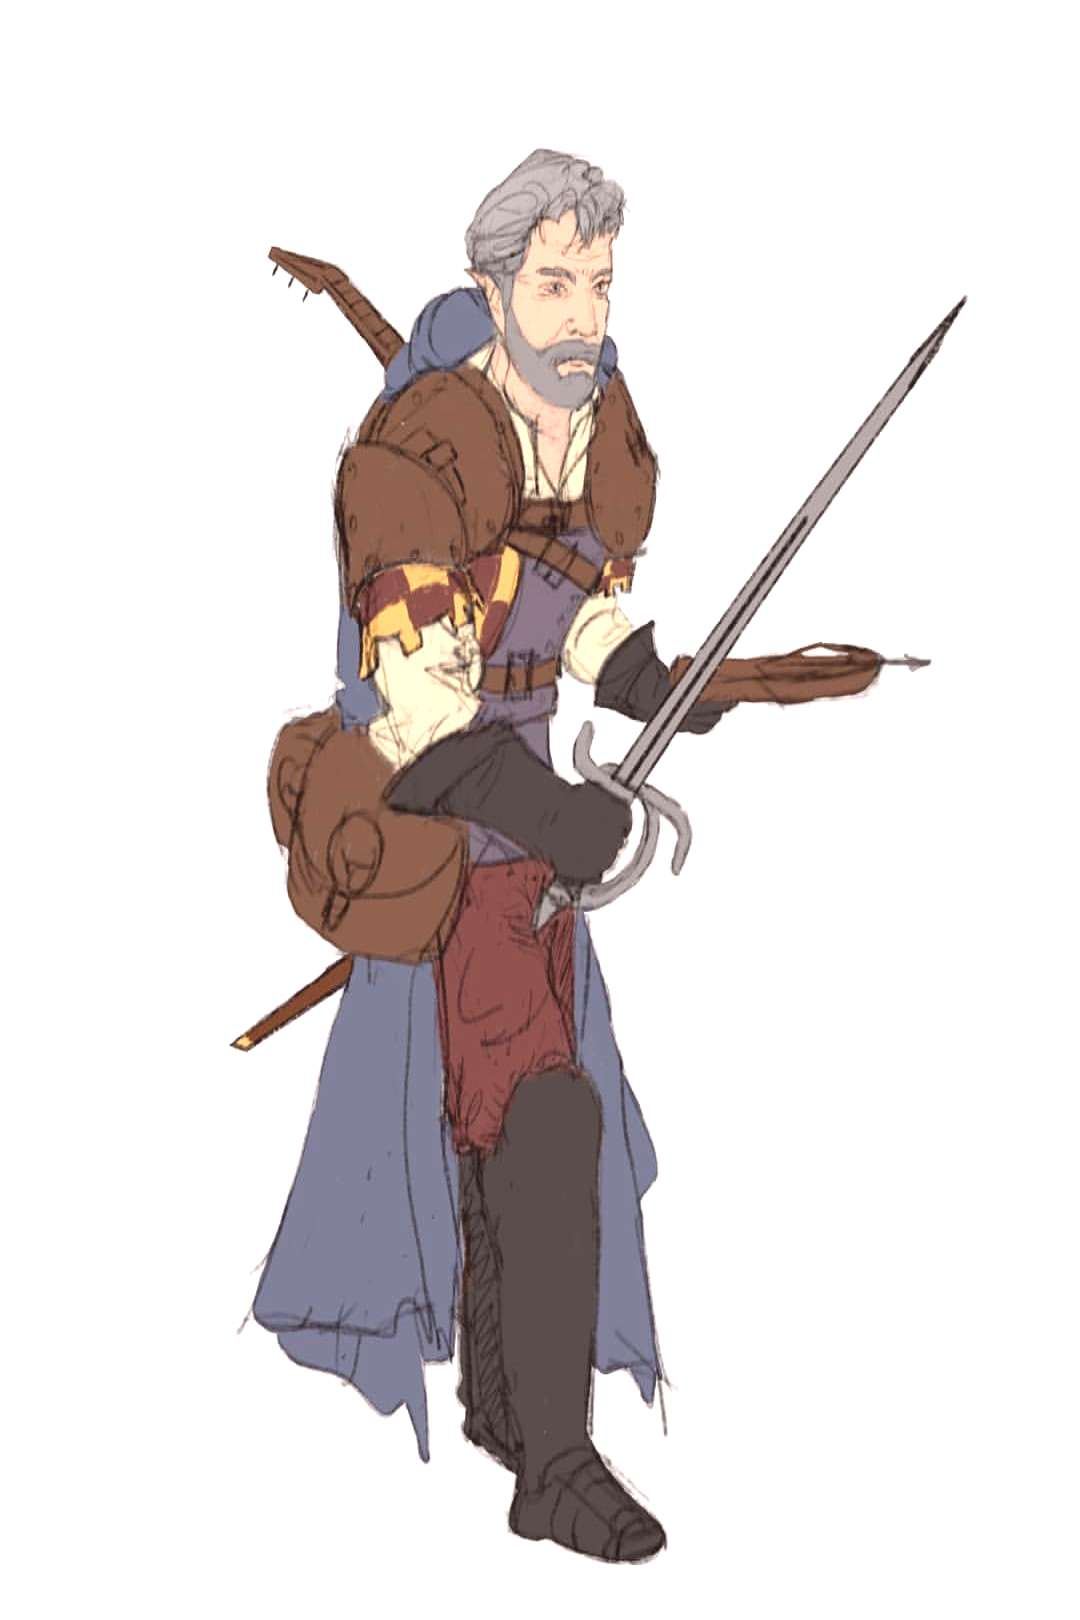 Blocking and initial colouring fase. #bard #charactercreation #ch